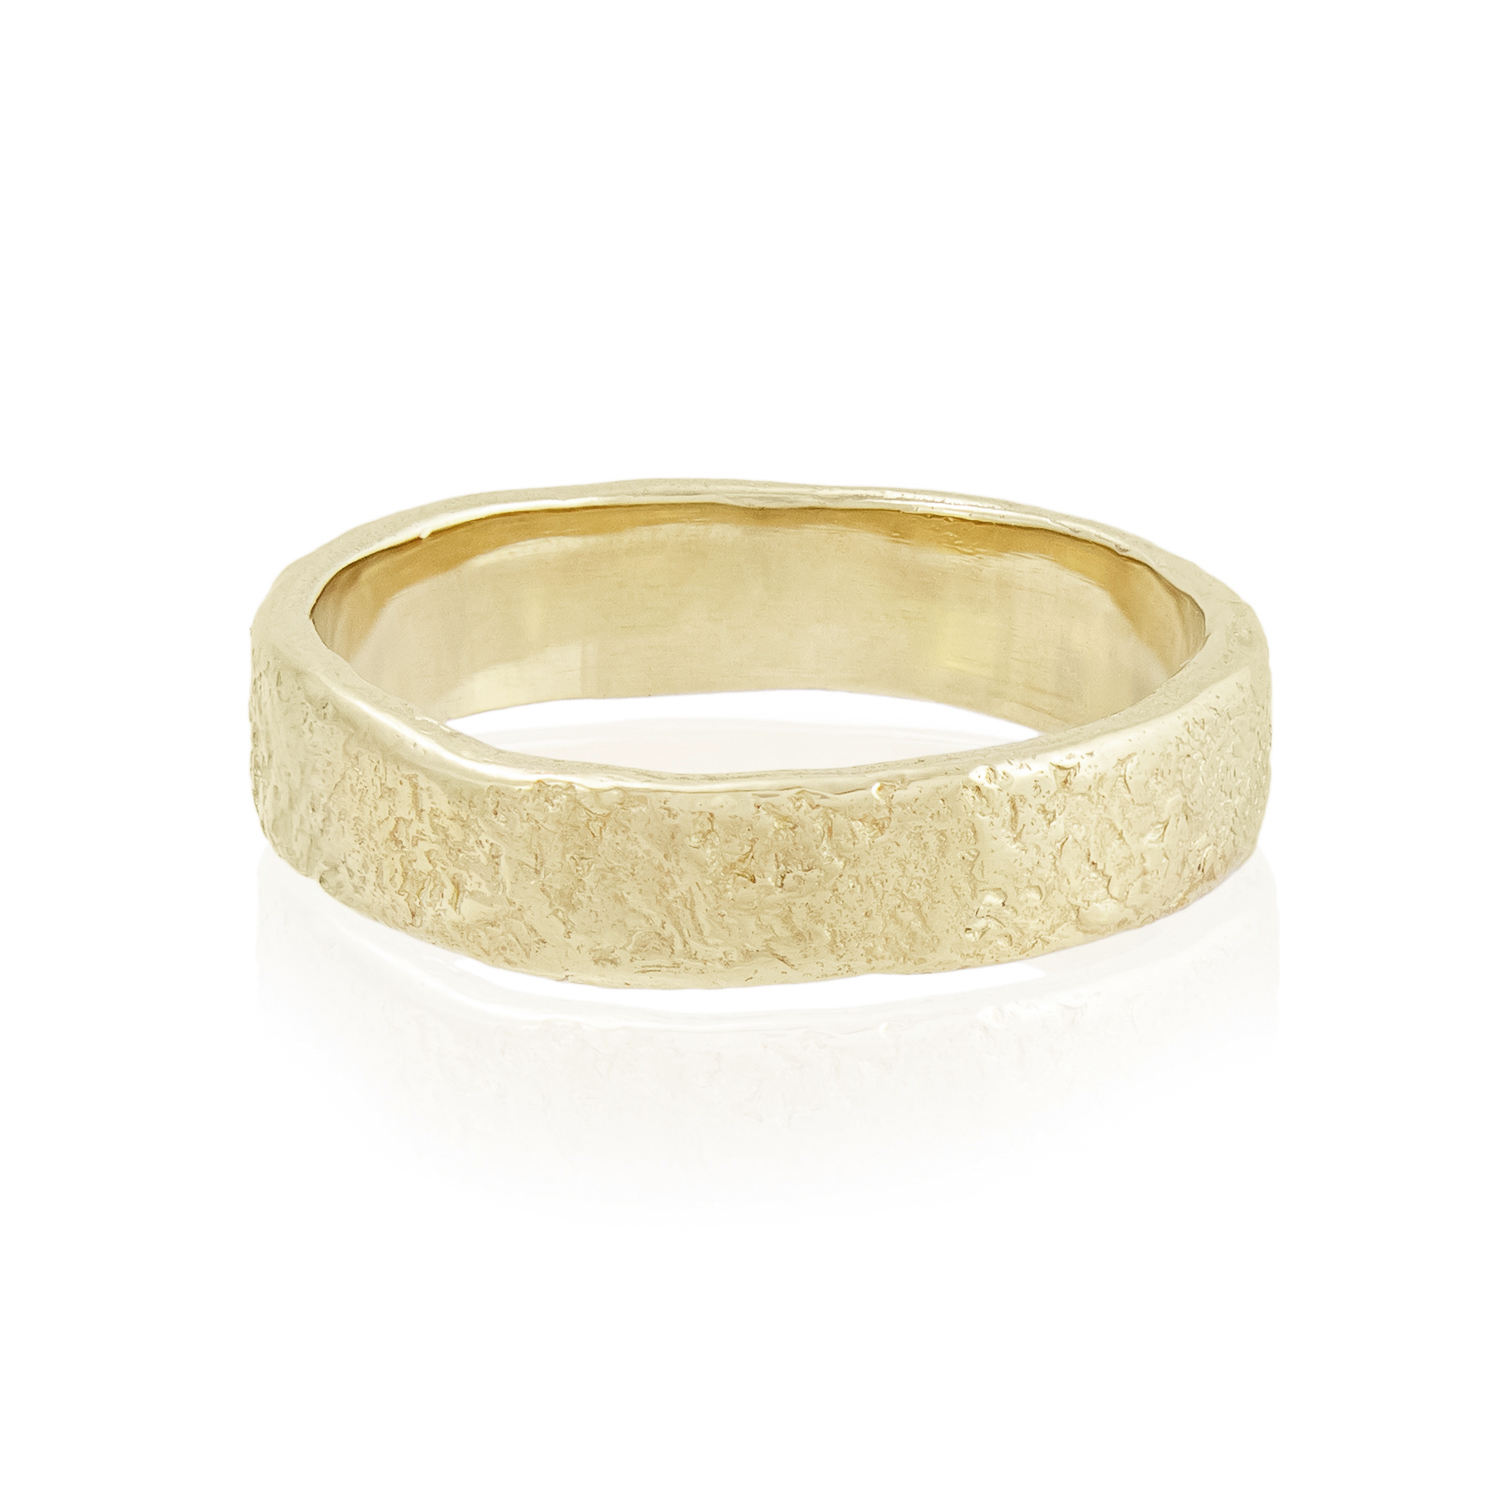 Natalie Perry Jewellery, 5mm organic wedding ring 9ct